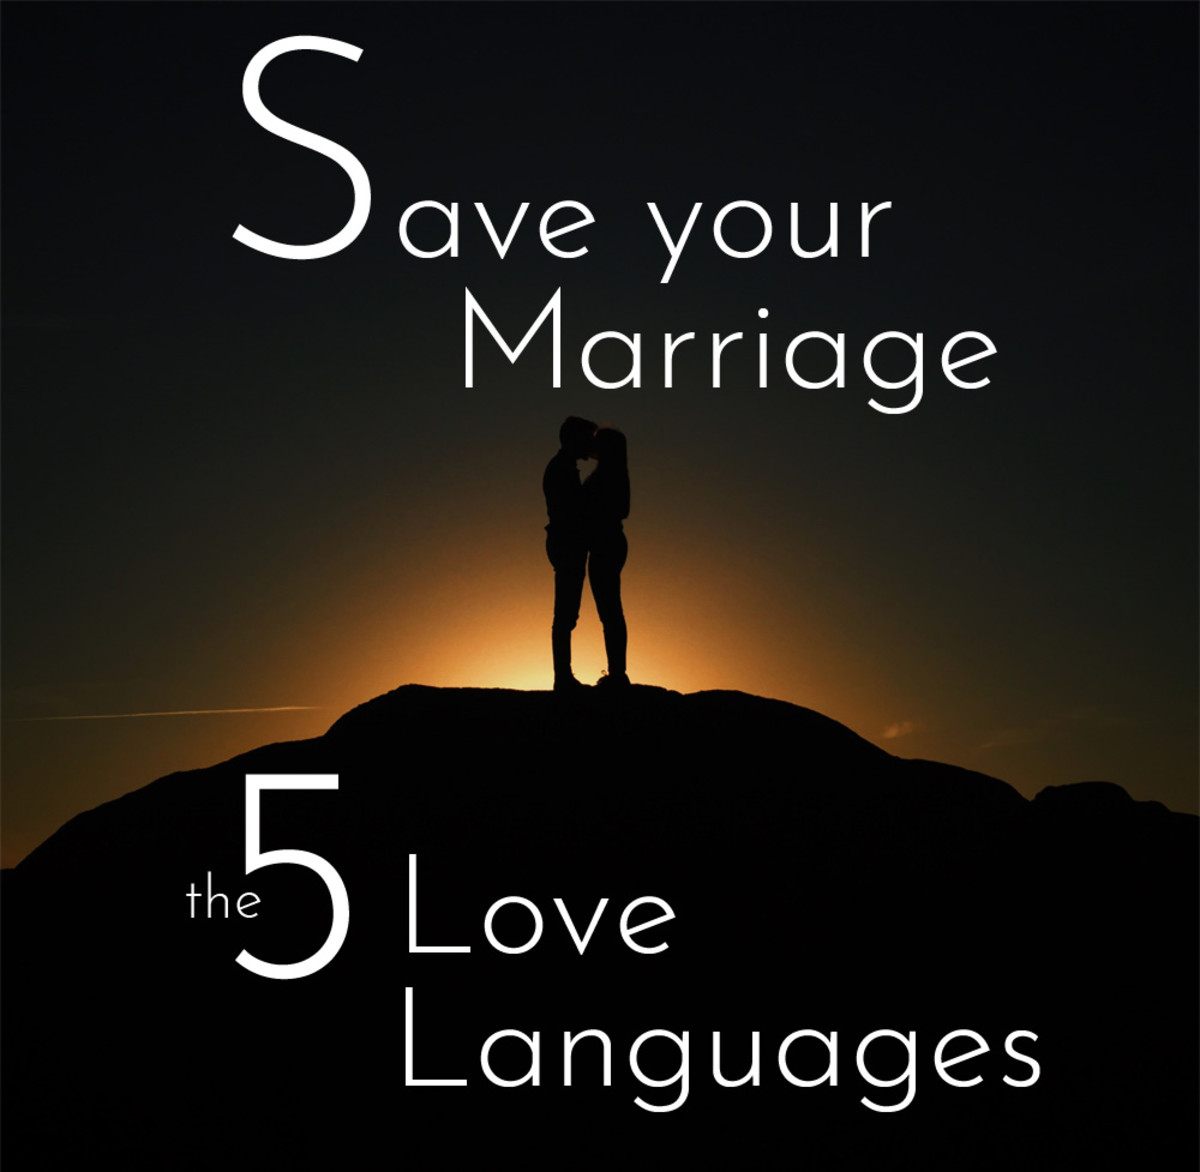 Save your marriage using the 5 Love Languages.